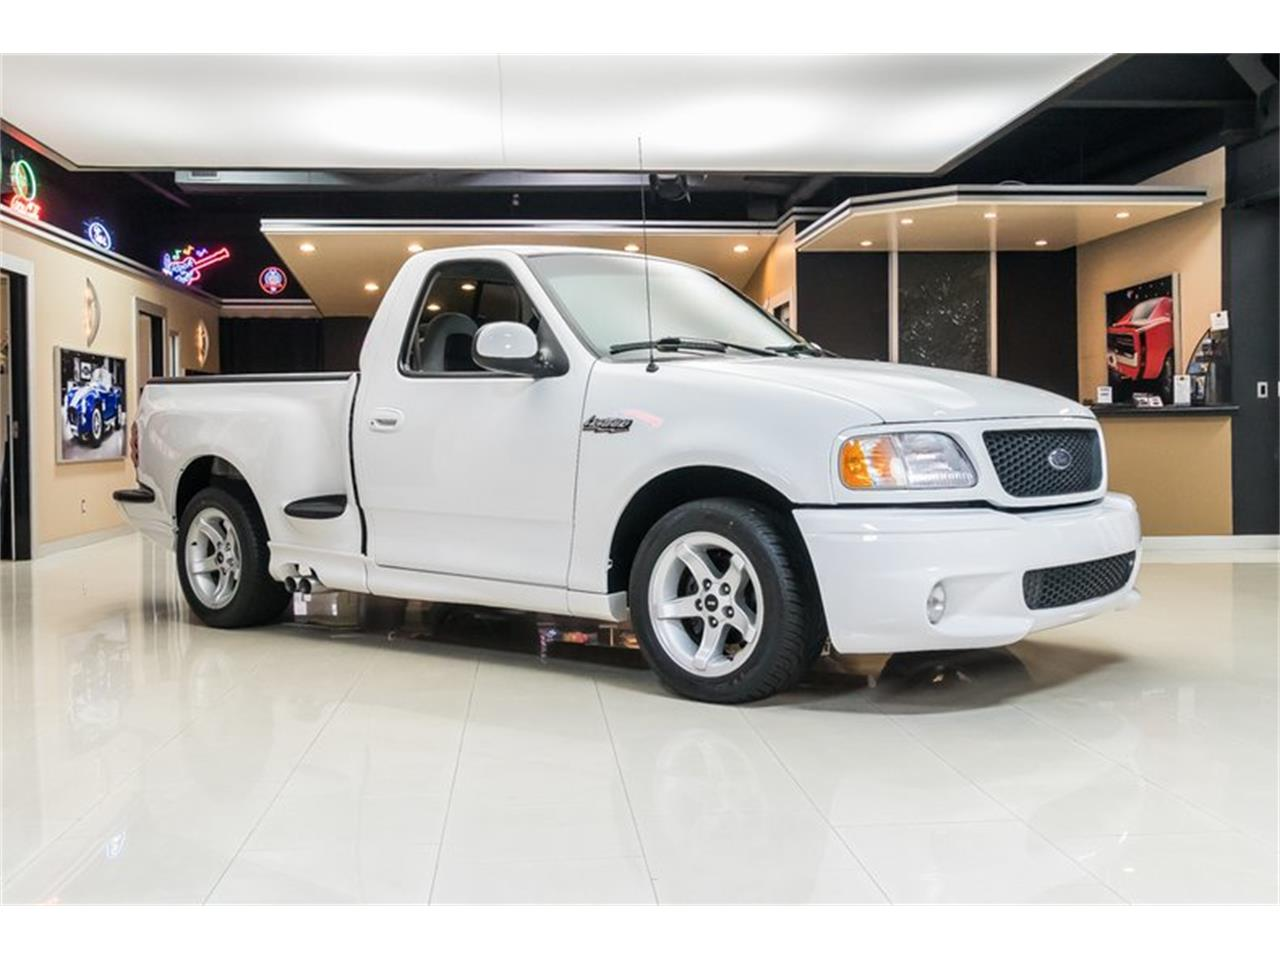 Large Picture of '00 F150 - $39,900.00 Offered by Vanguard Motor Sales - PWH0